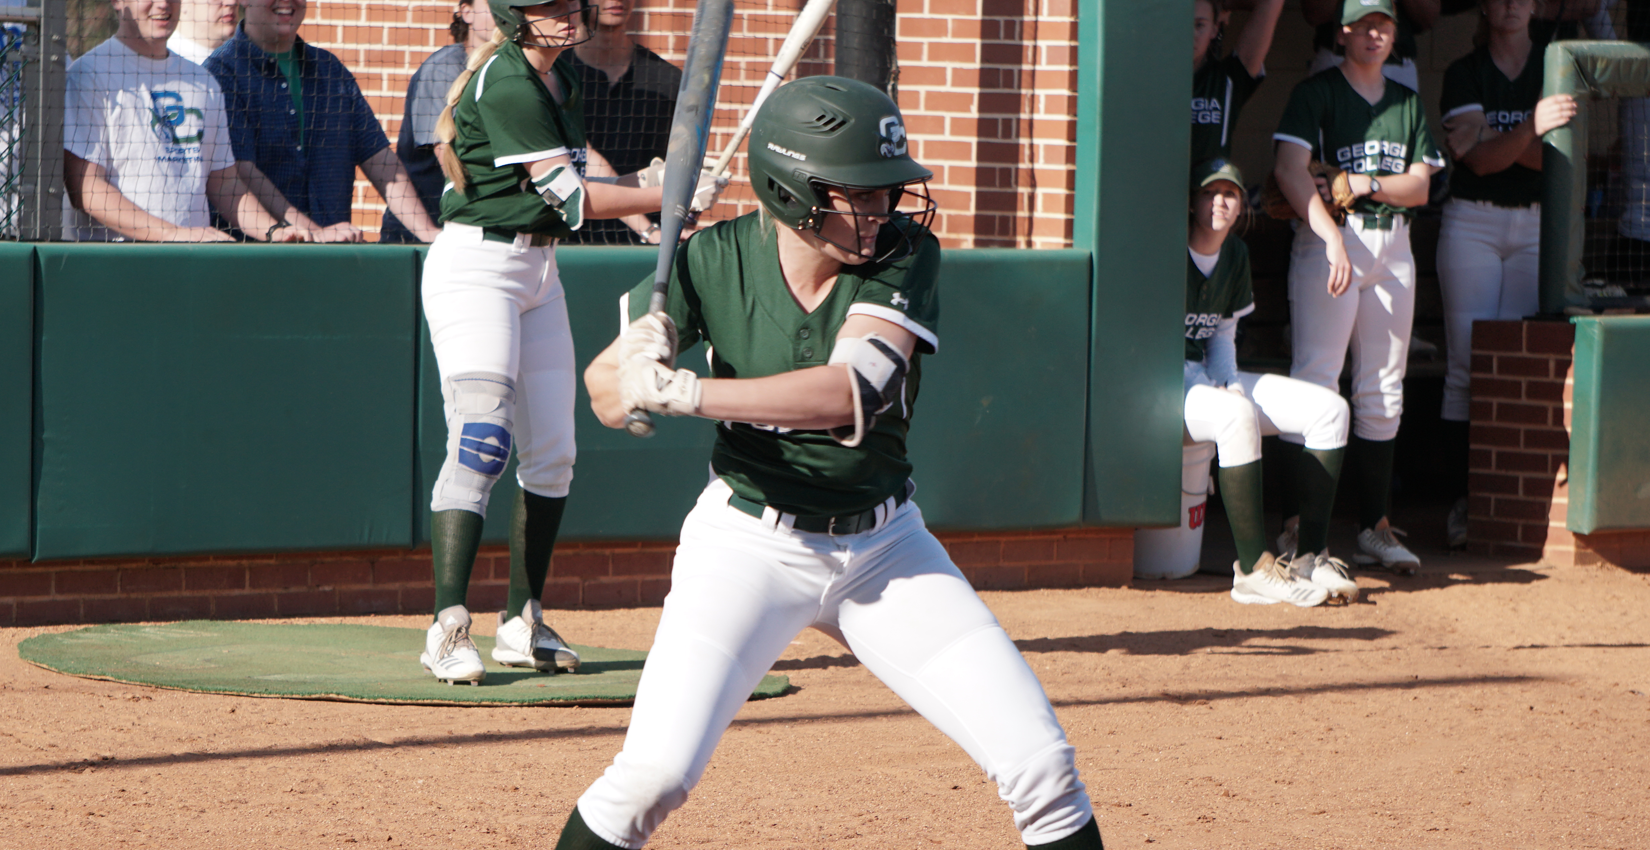 Bobcat Softball Takes Two from Lander, 7-3 and 7-5